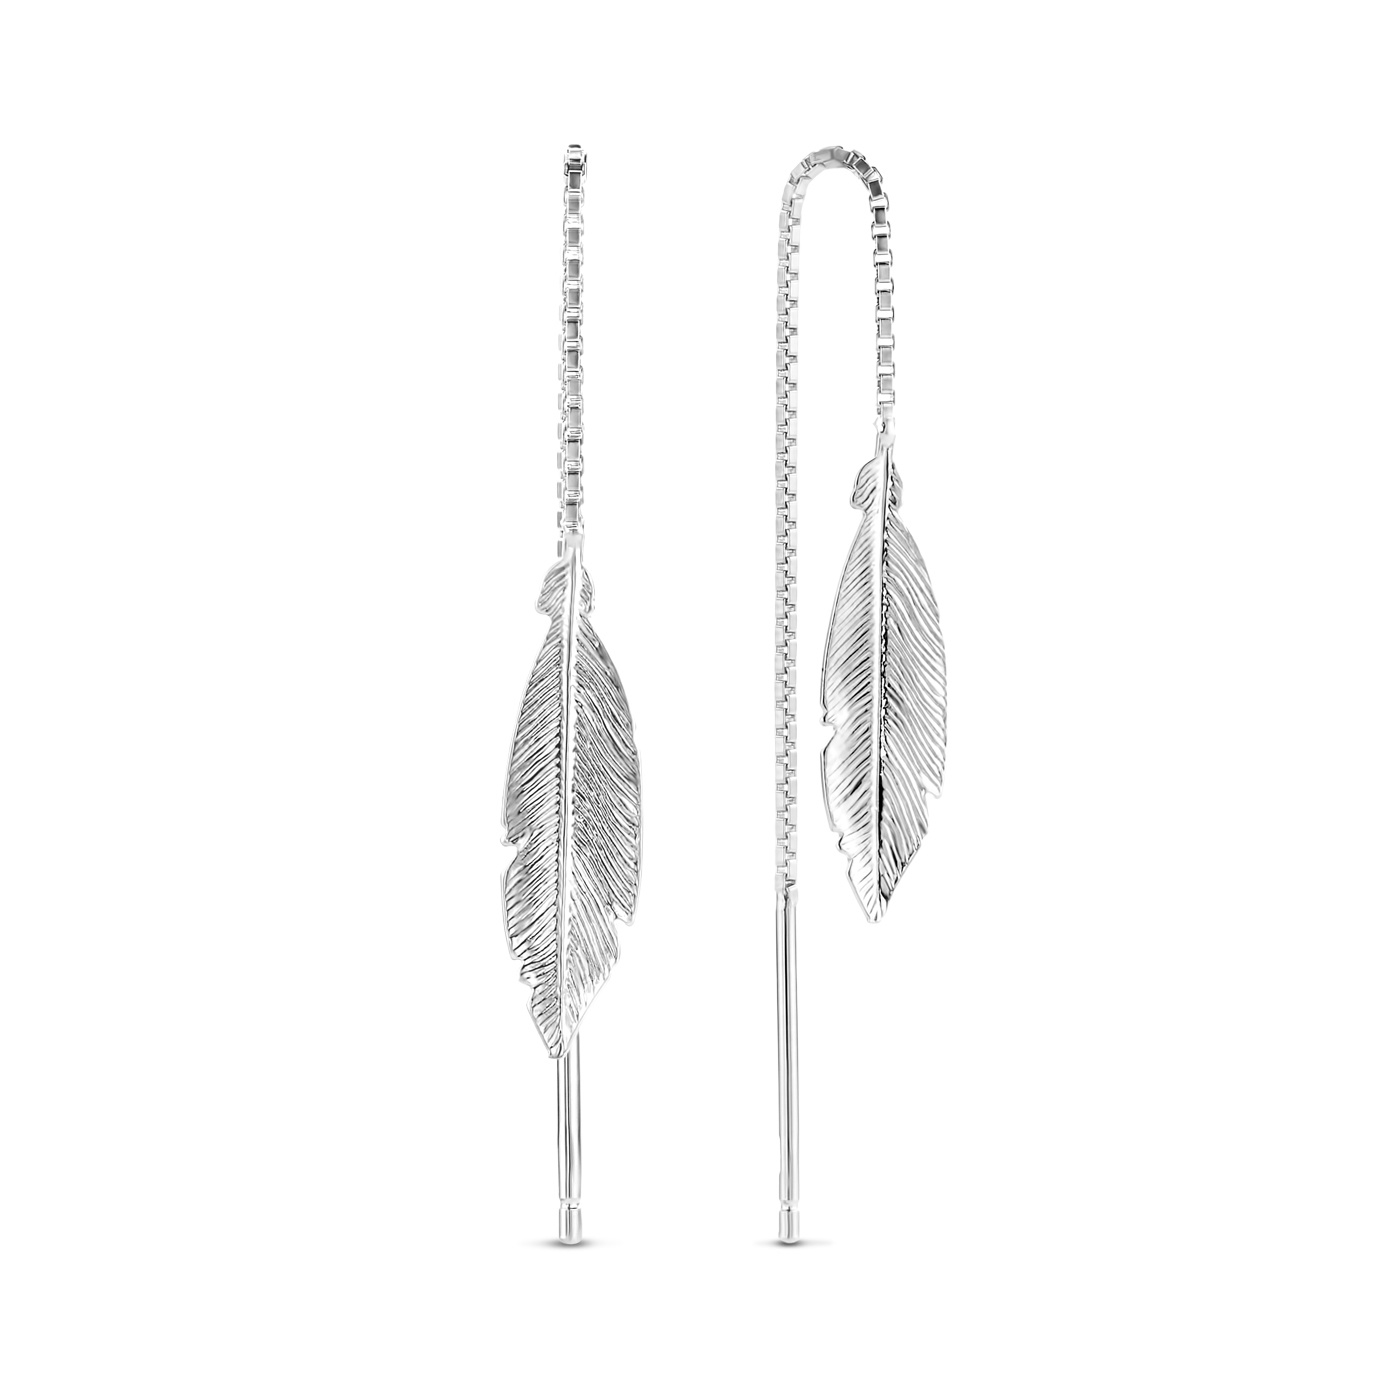 Selected Jewels Julie Lucie 925 sterling silver drop earrings with feathers